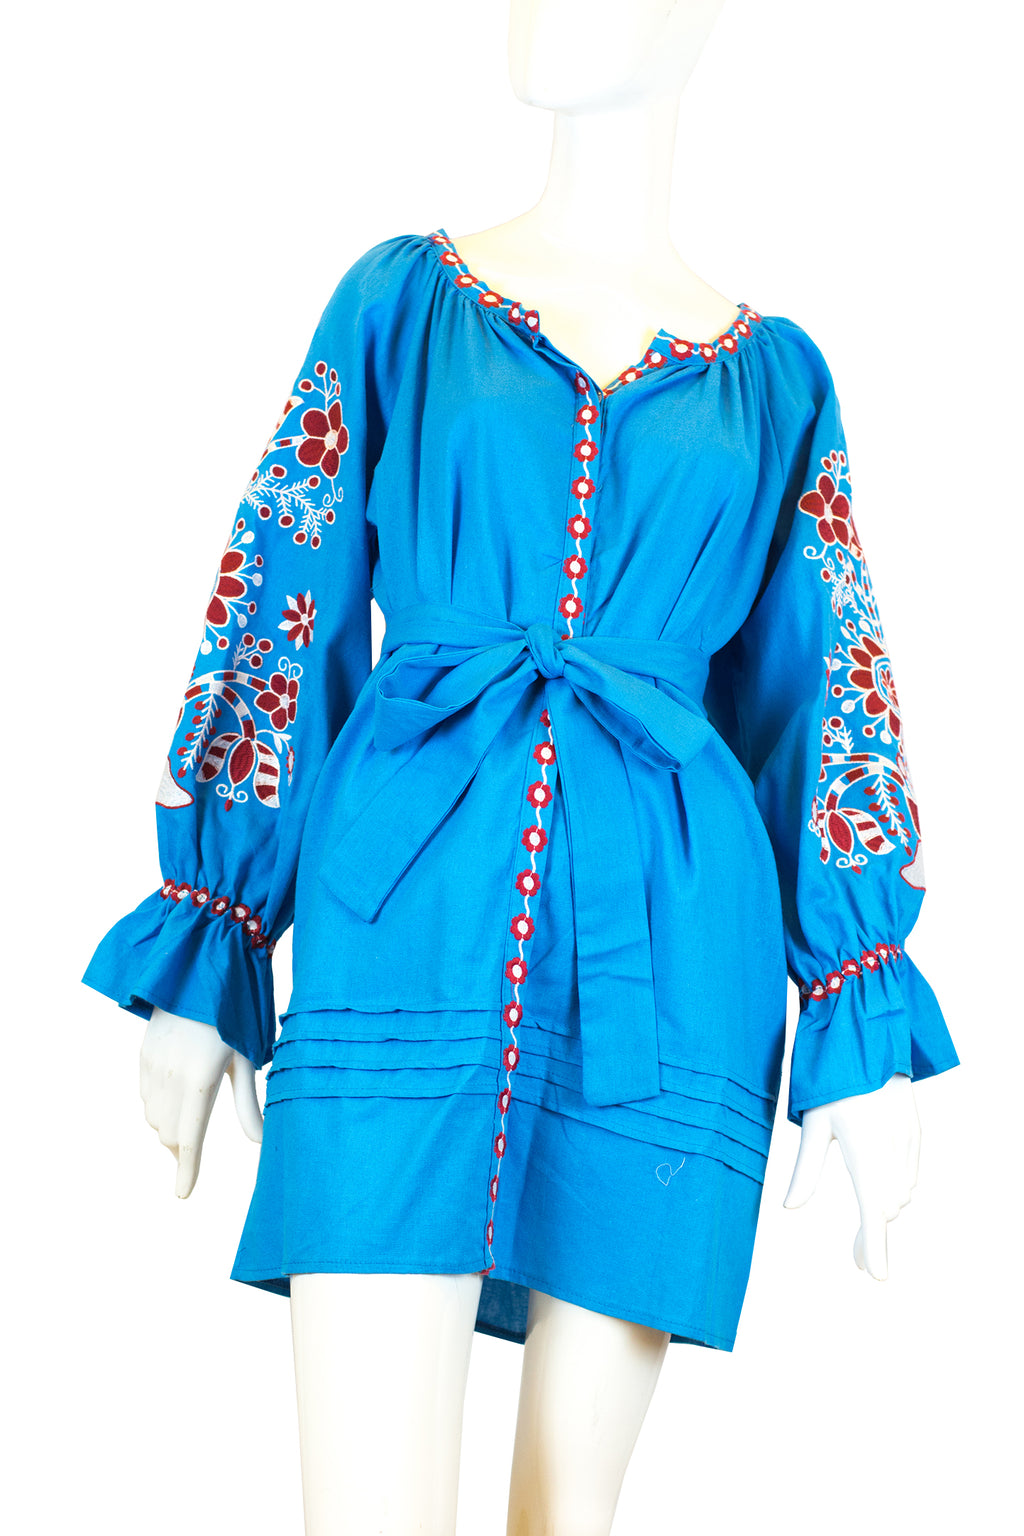 Kiswah - Blue long sleeve blouse with belt & embroidery design